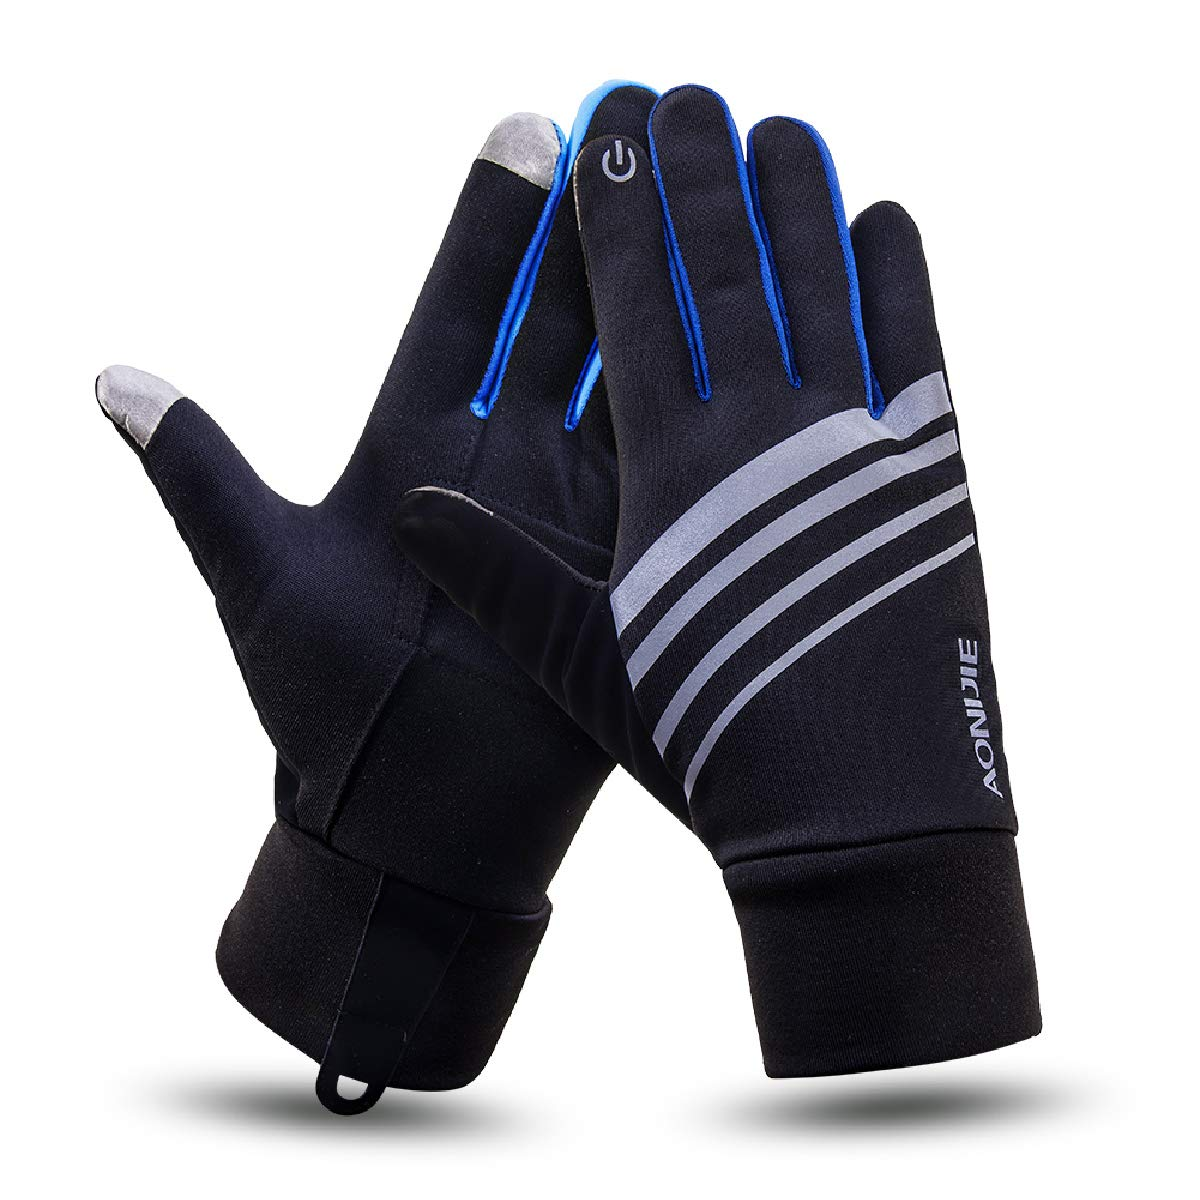 Azarxis Winter Thermal Running Gloves Touch Screen Windproof Warm Lightweight Glove for Men & Women Outdoor Cycling Driving Hiking